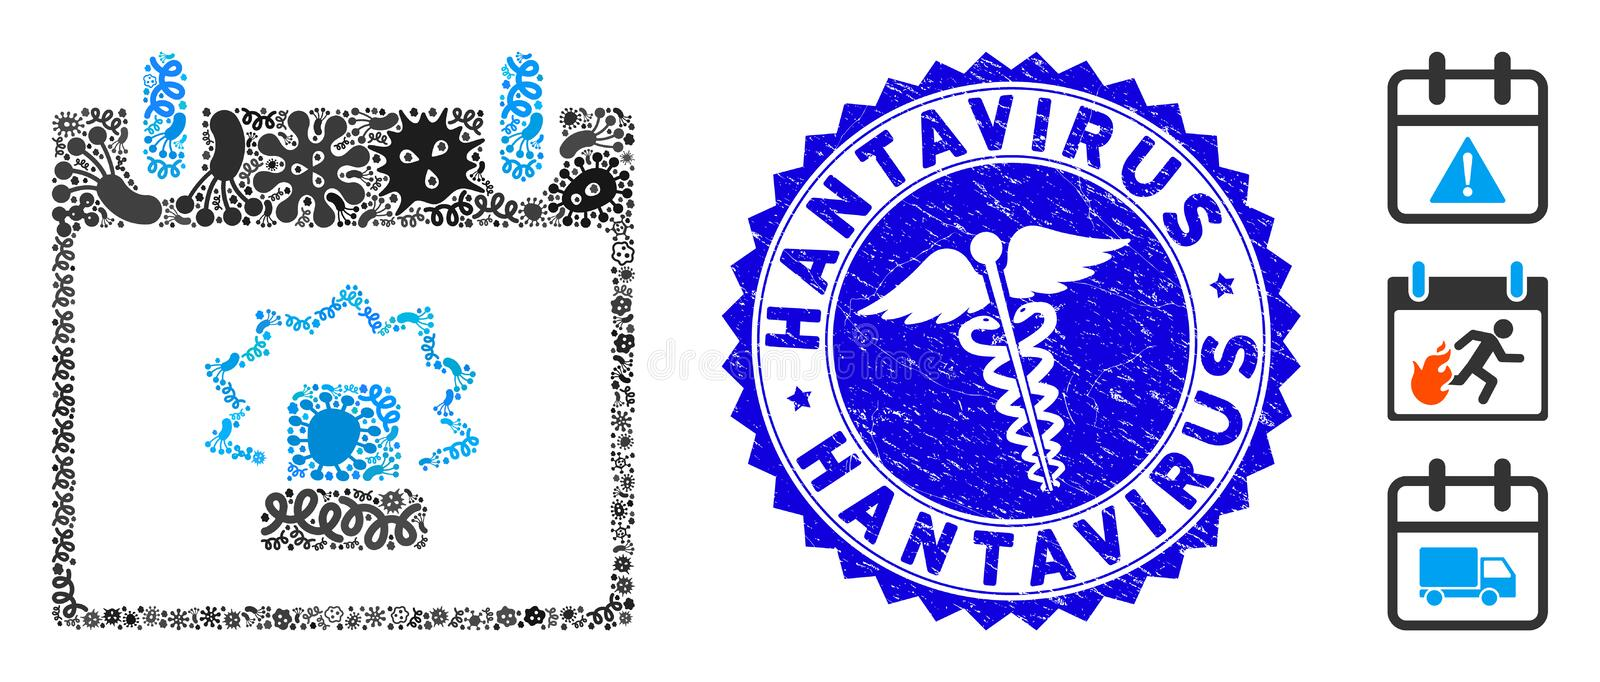 Hantavirus Stock Illustrations – 118 Hantavirus Stock ...